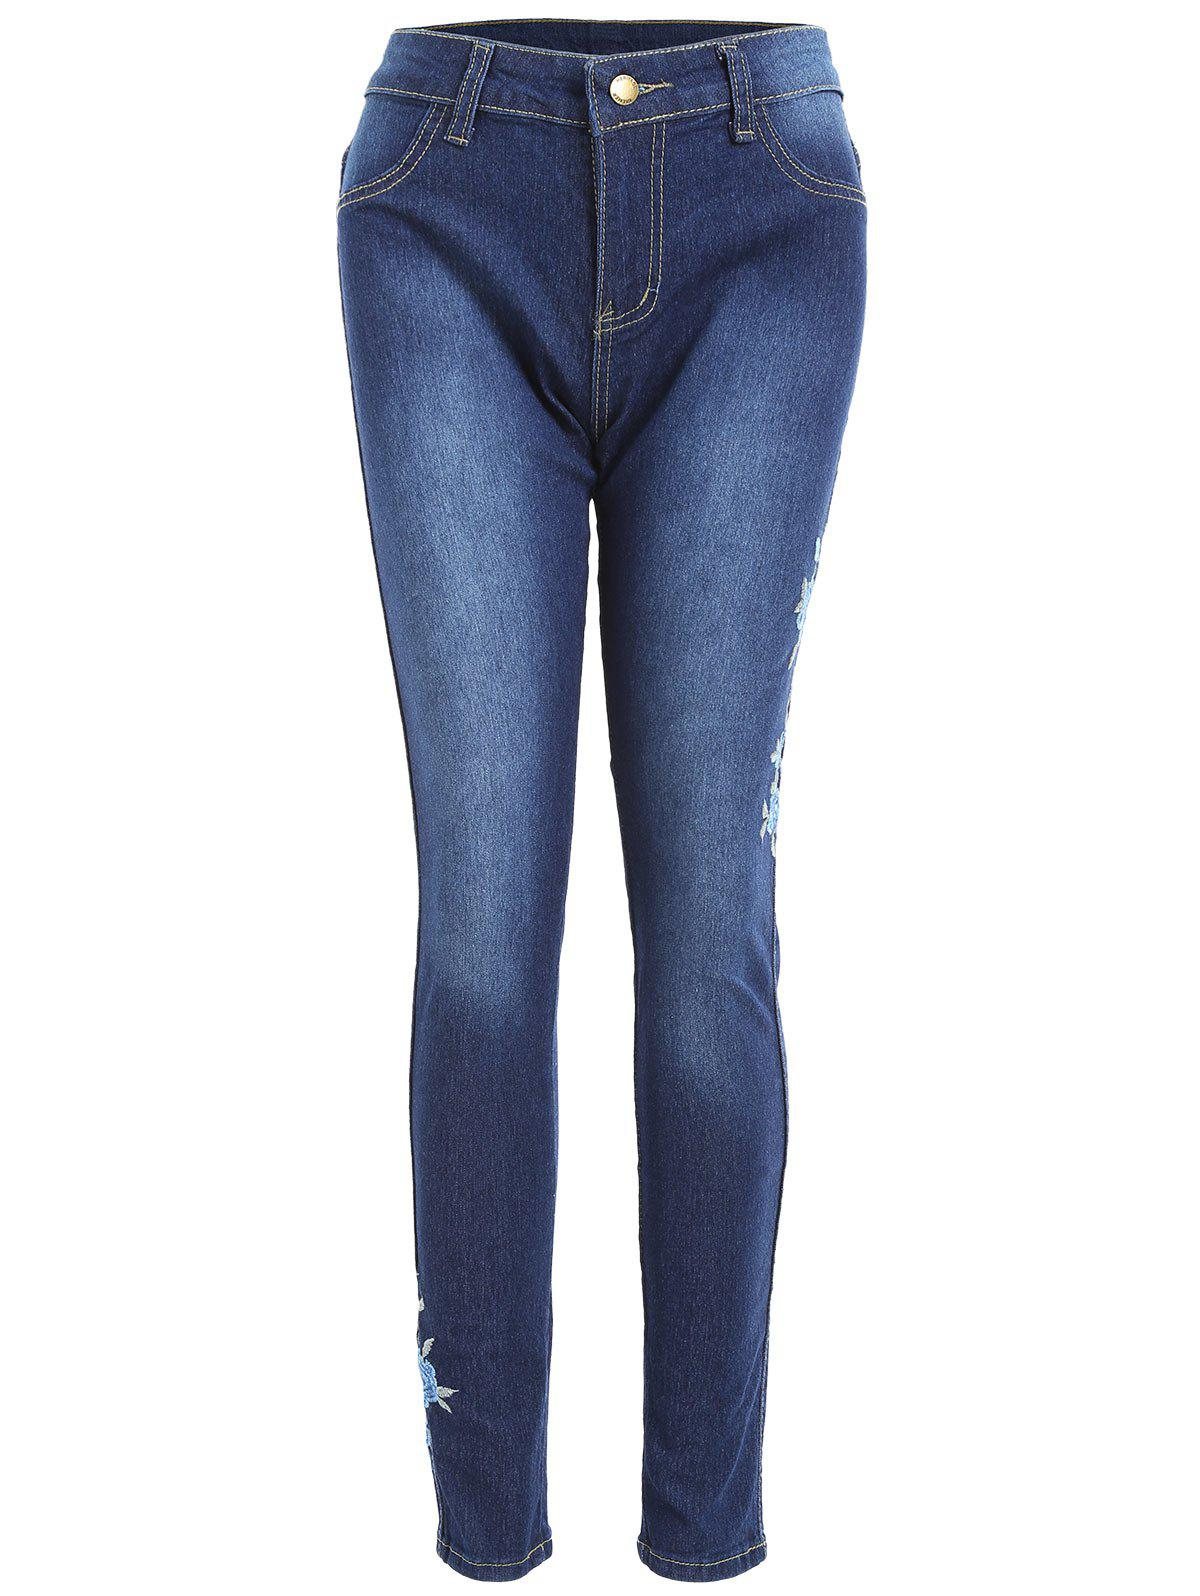 High Waisted Floral Embroidered Skinny Jeans - BLUE M